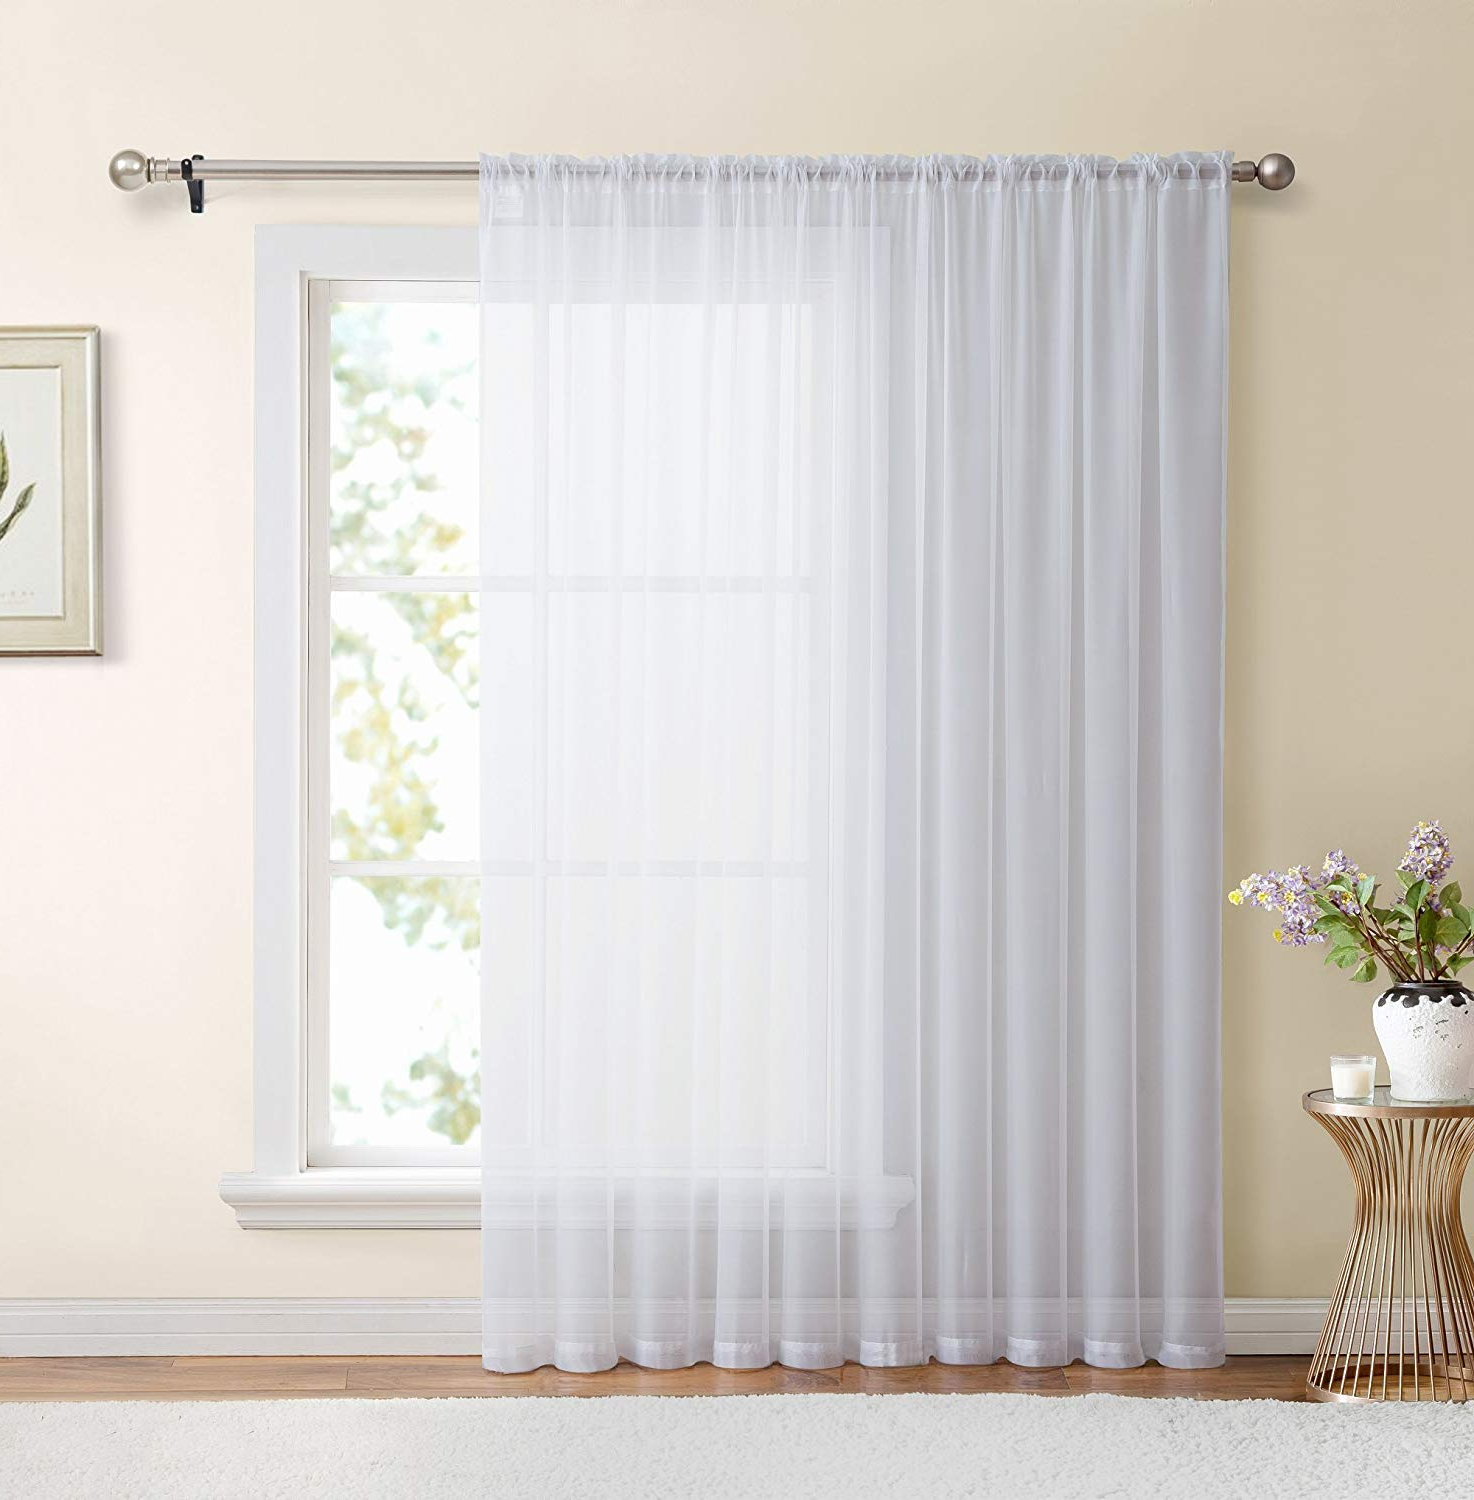 Most Recent Extra Wide White Voile Sheer Curtain Panels In Hlc White Window Sheer Voile Curtain Panel For Sliding Patio Glass Door – Extra Wide Curtain – 100 X 84 Inch Long (View 5 of 20)